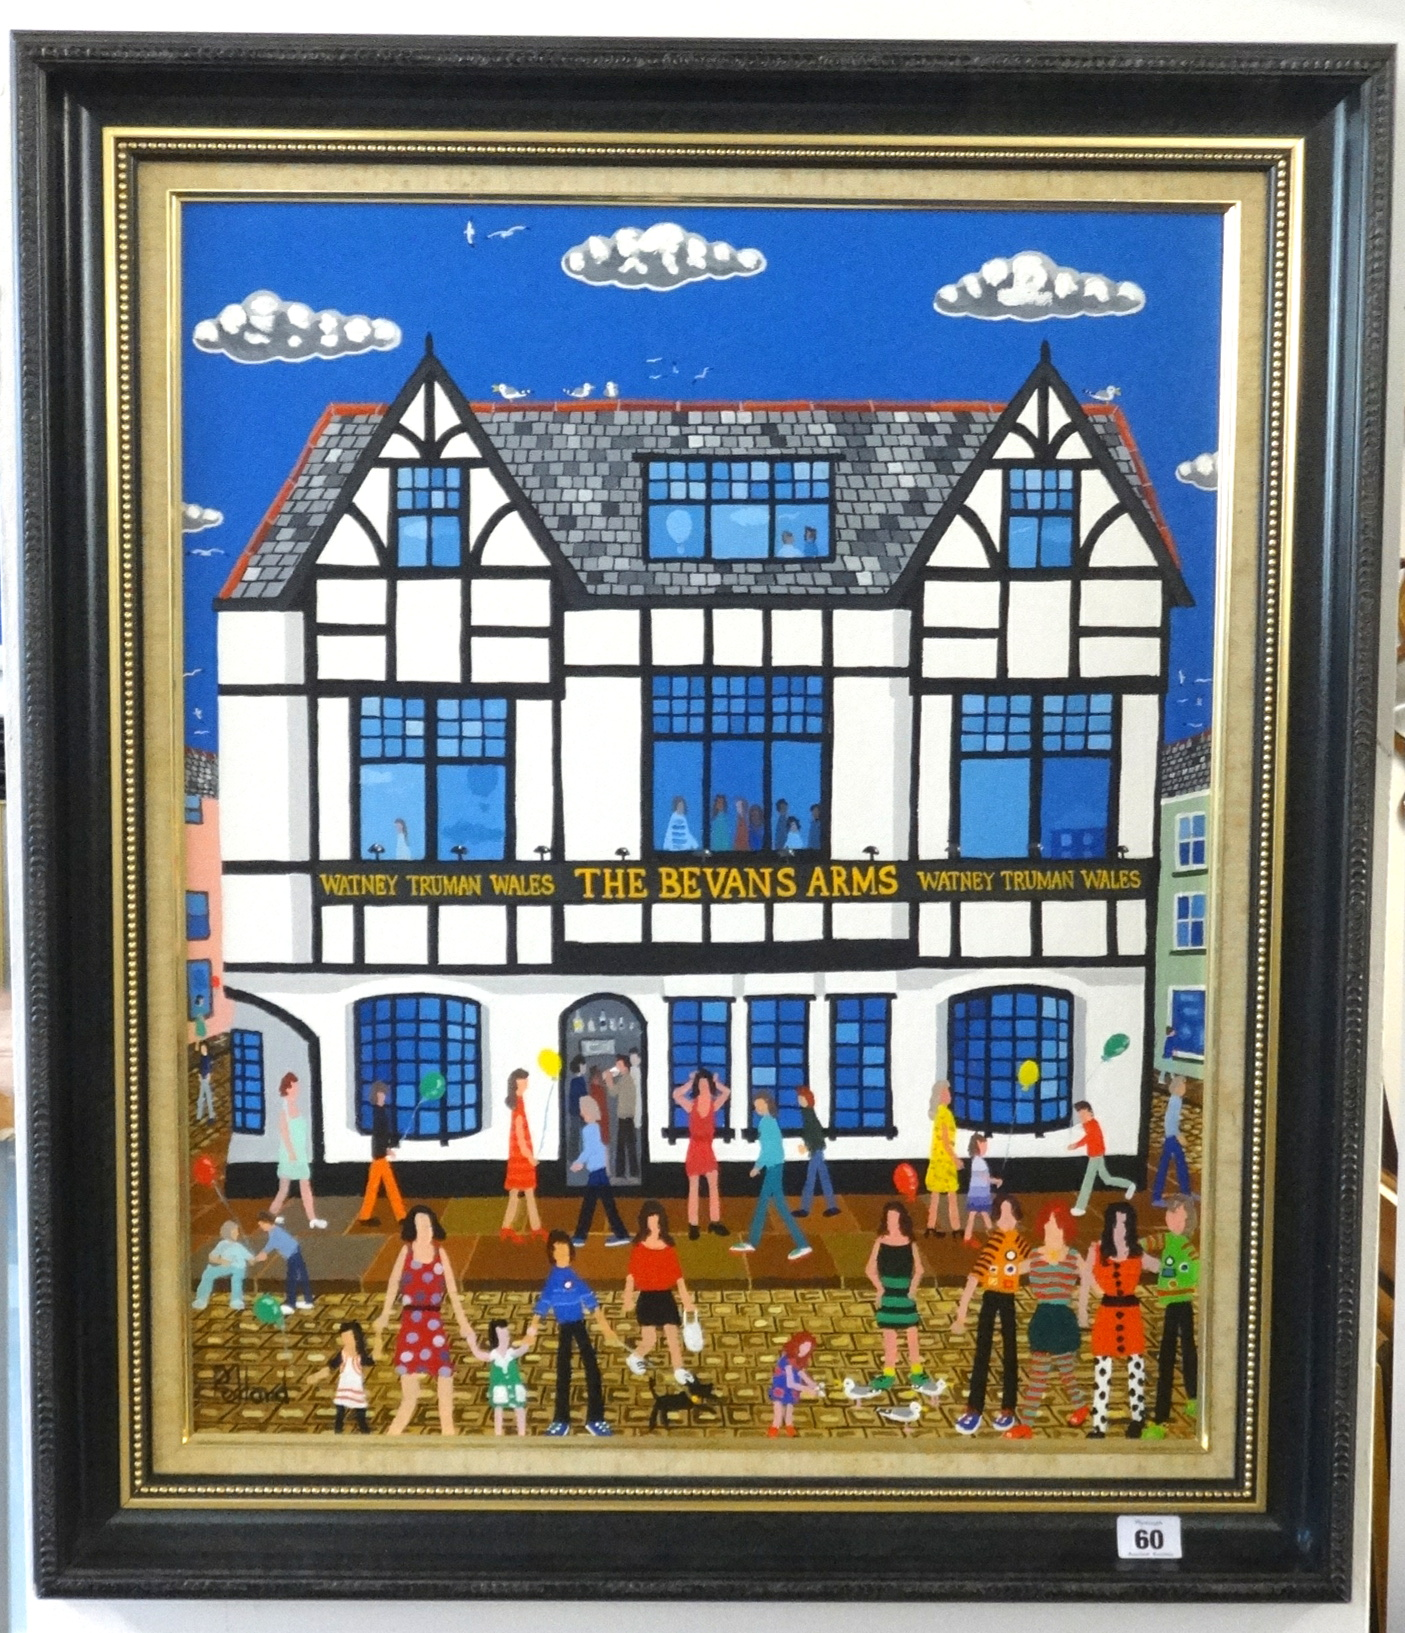 Lot 060 - Brian Pollard, acrylic on board signed, 'Bevans Arms, Swansea, 60cm x 50cm.